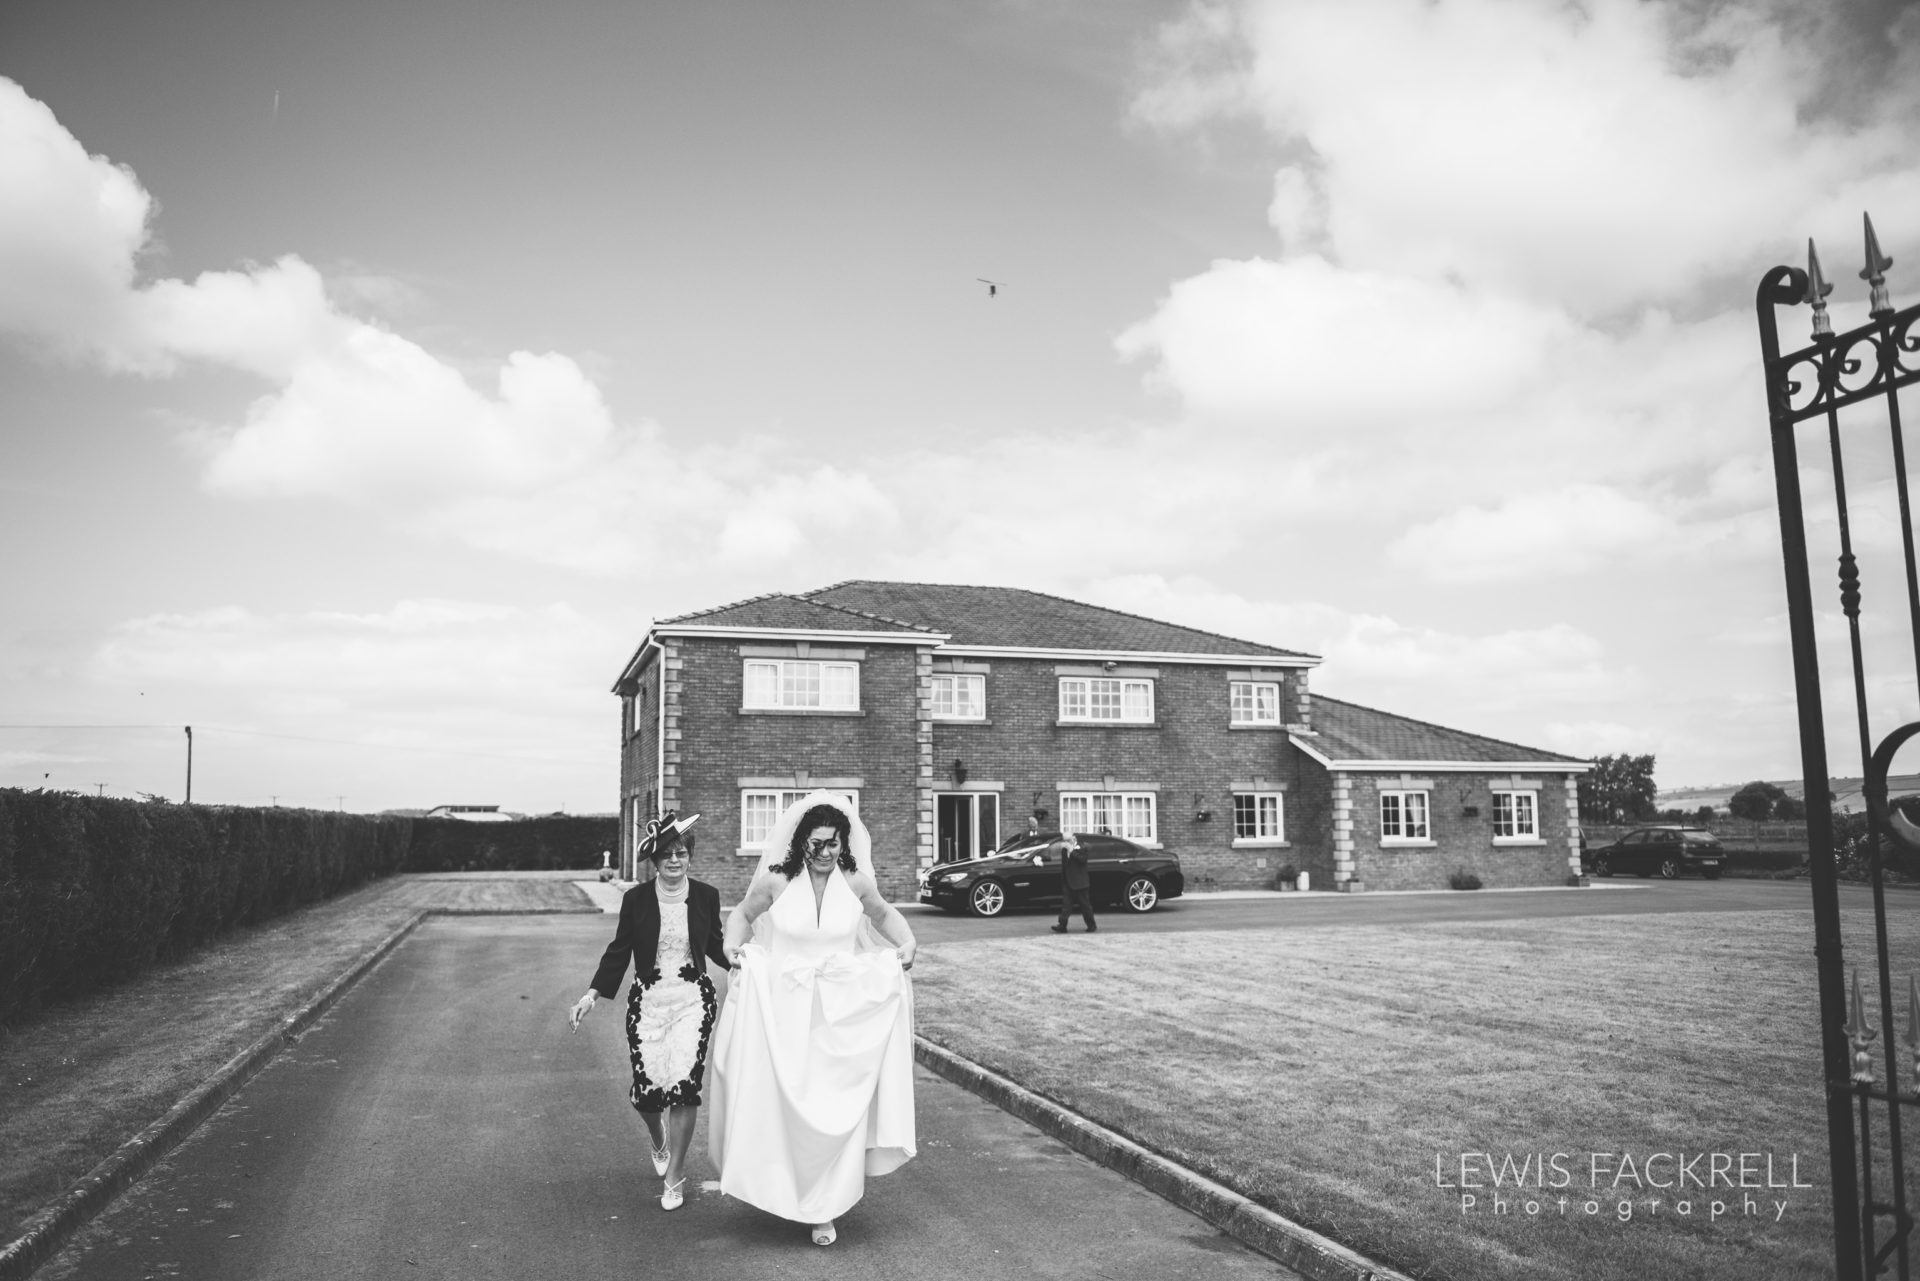 Lewis-Fackrell-Photography-Wedding-Photographer-Cardiff-Swansea-Bristol-Newport-Pre-wedding-photoshoot-Rhian-Mark-Mansion-House-Llansteffan-Carmarthenshire--11